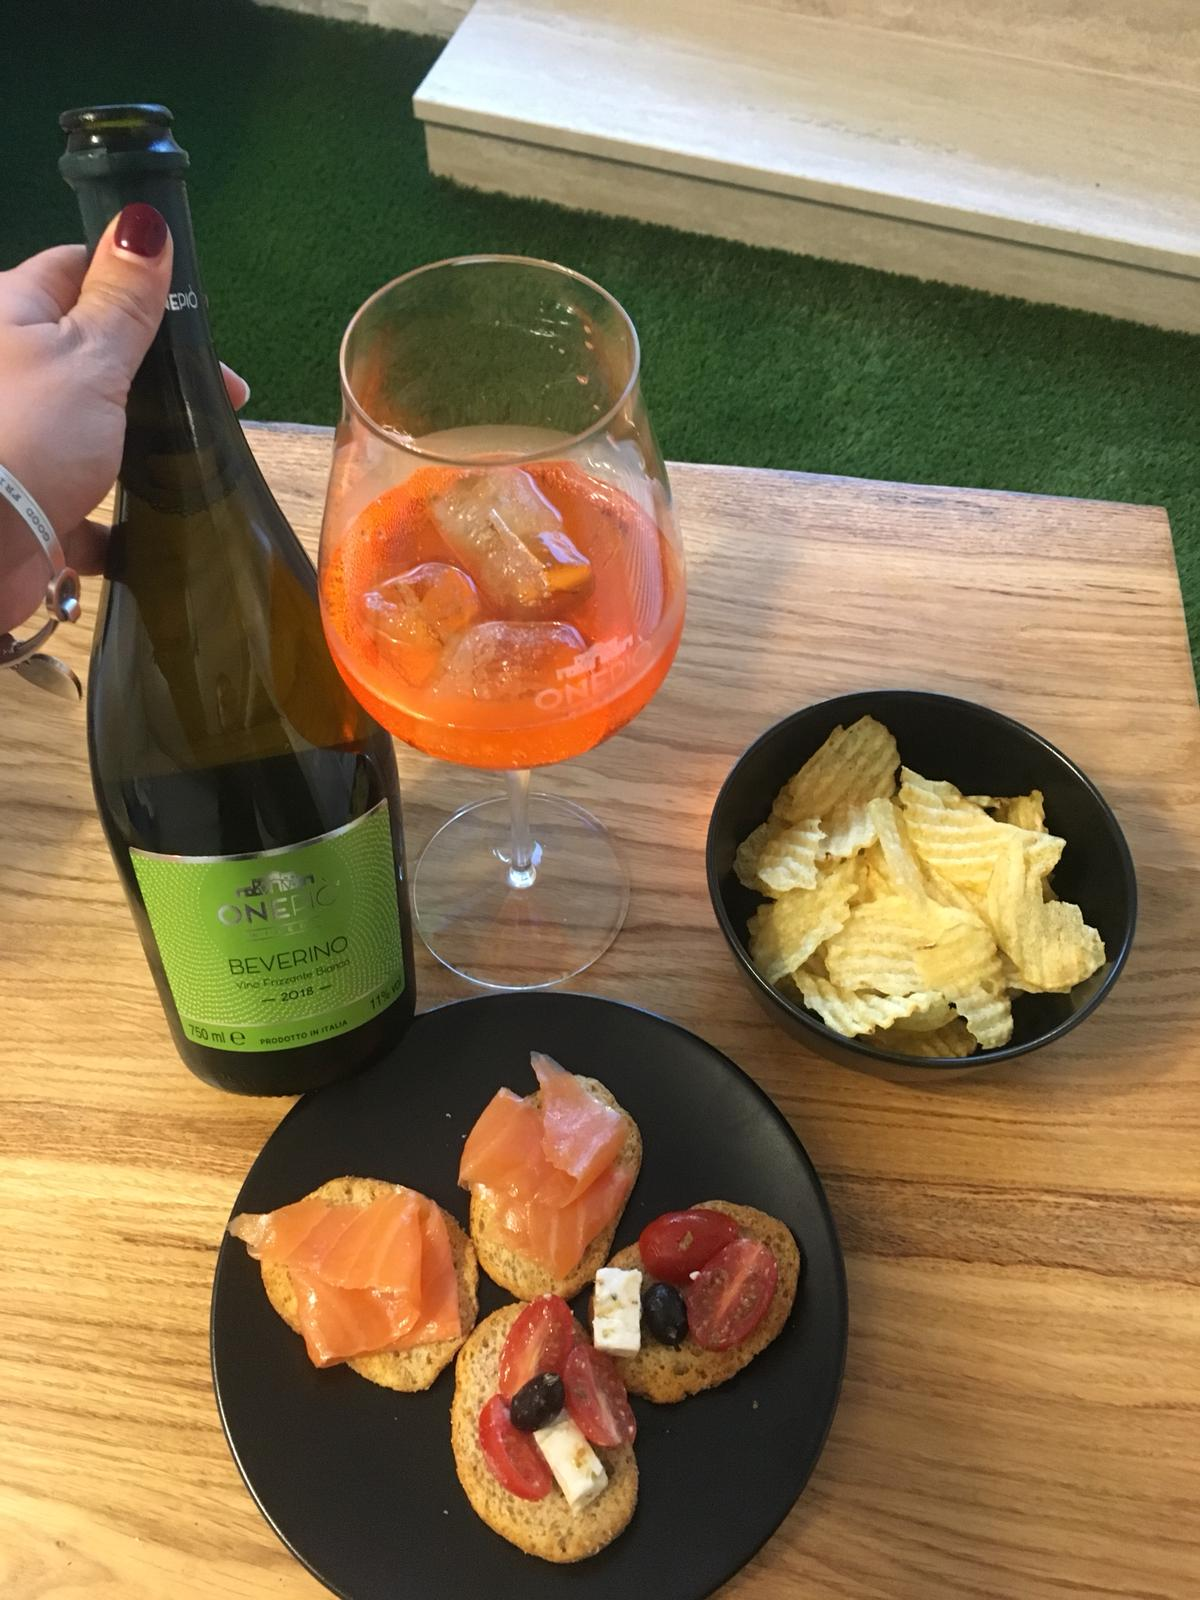 After mixing Beverino and Aperol, you are ready to enjoy your aperitif with some snacks! - Click here to find out our Sparkling White Wine Beverino !